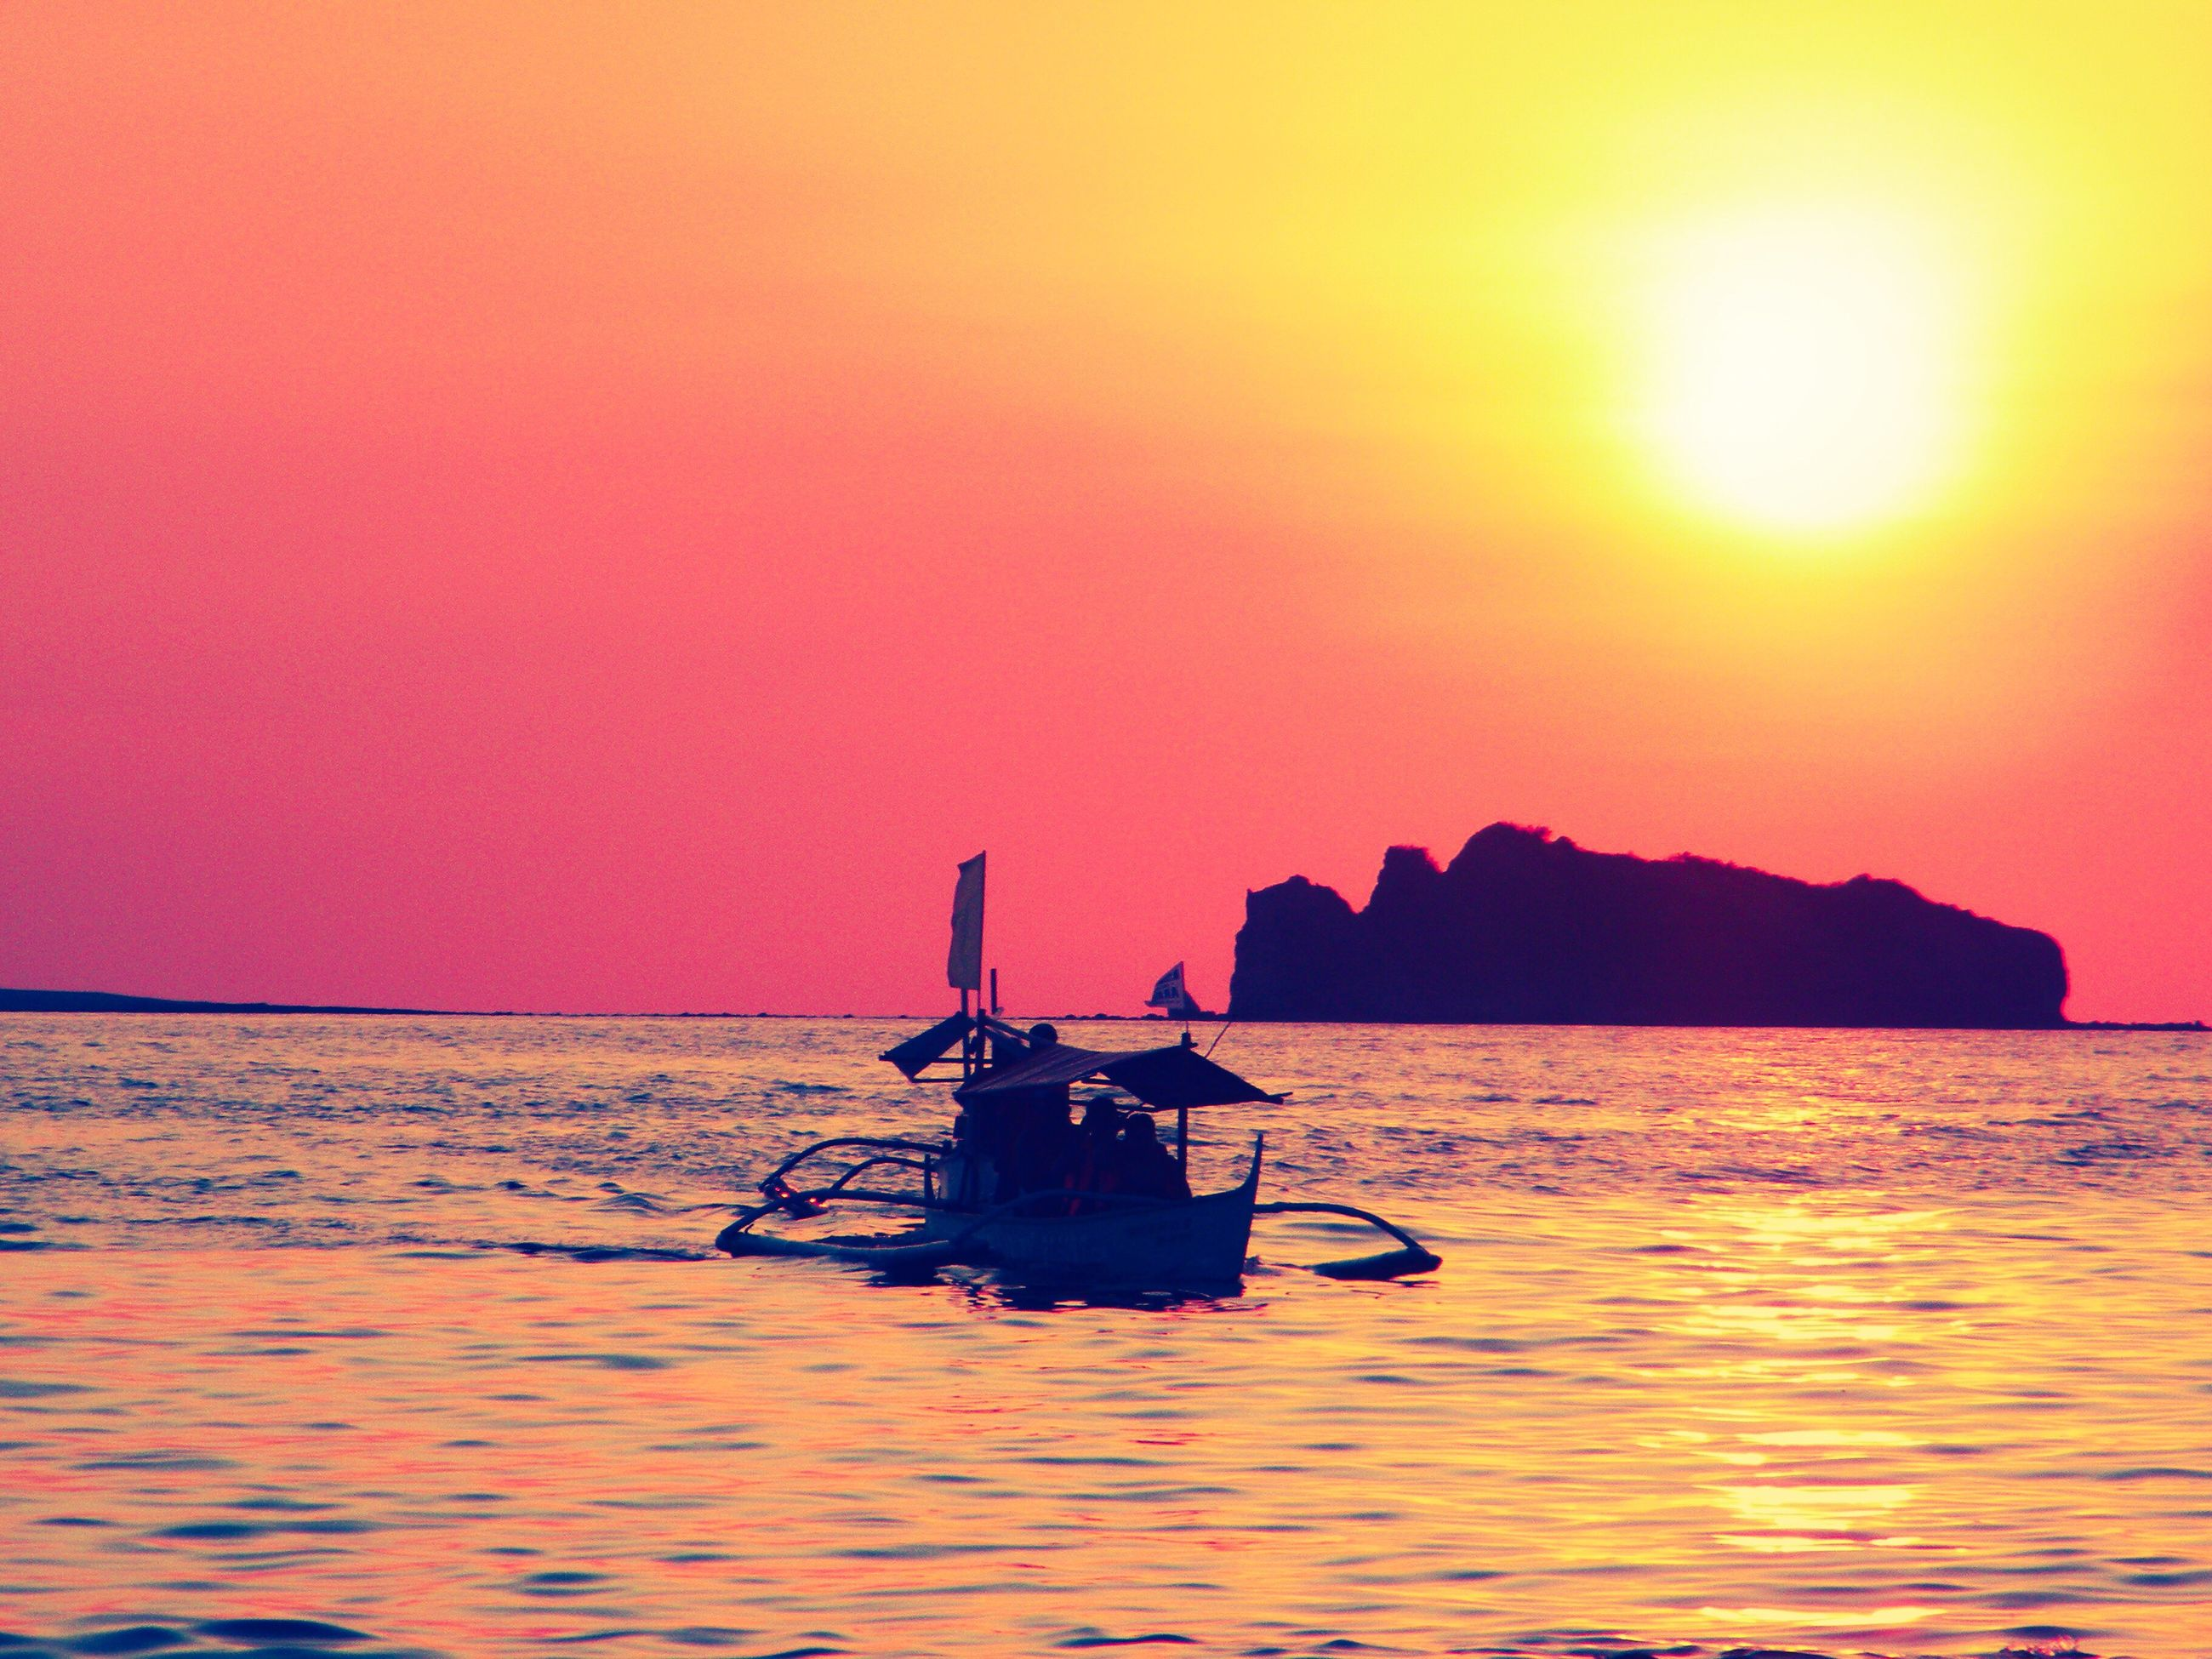 sunset, sea, tranquility, beauty in nature, scenics, sky, nature, nautical vessel, water, outdoors, transportation, no people, tranquil scene, horizon over water, day, astrology sign